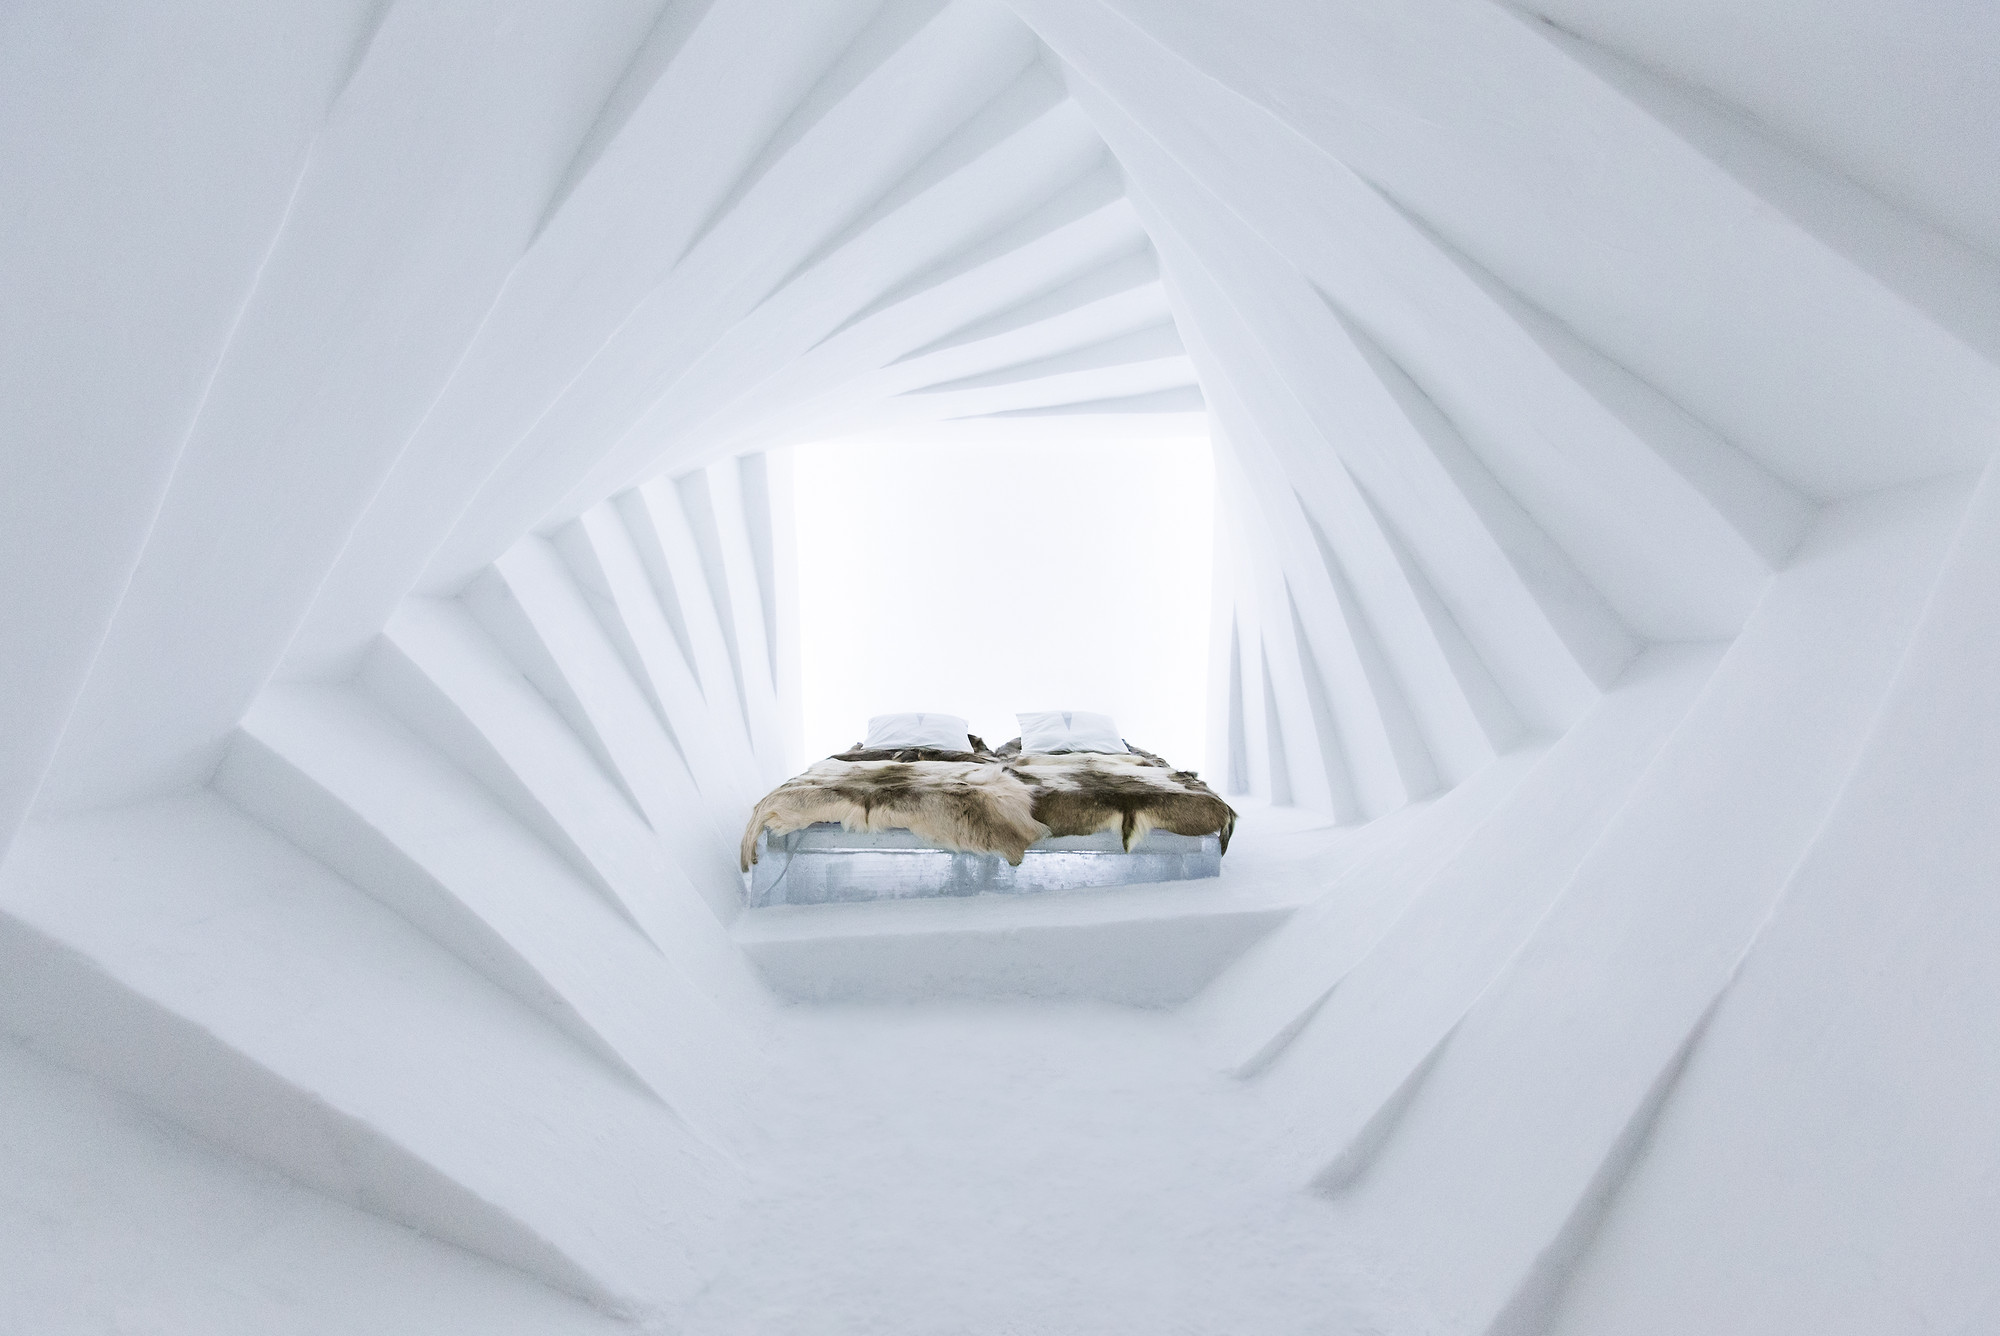 Images from the 25th Annual ICEHOTEL, Courtesy of ICEHOTEL